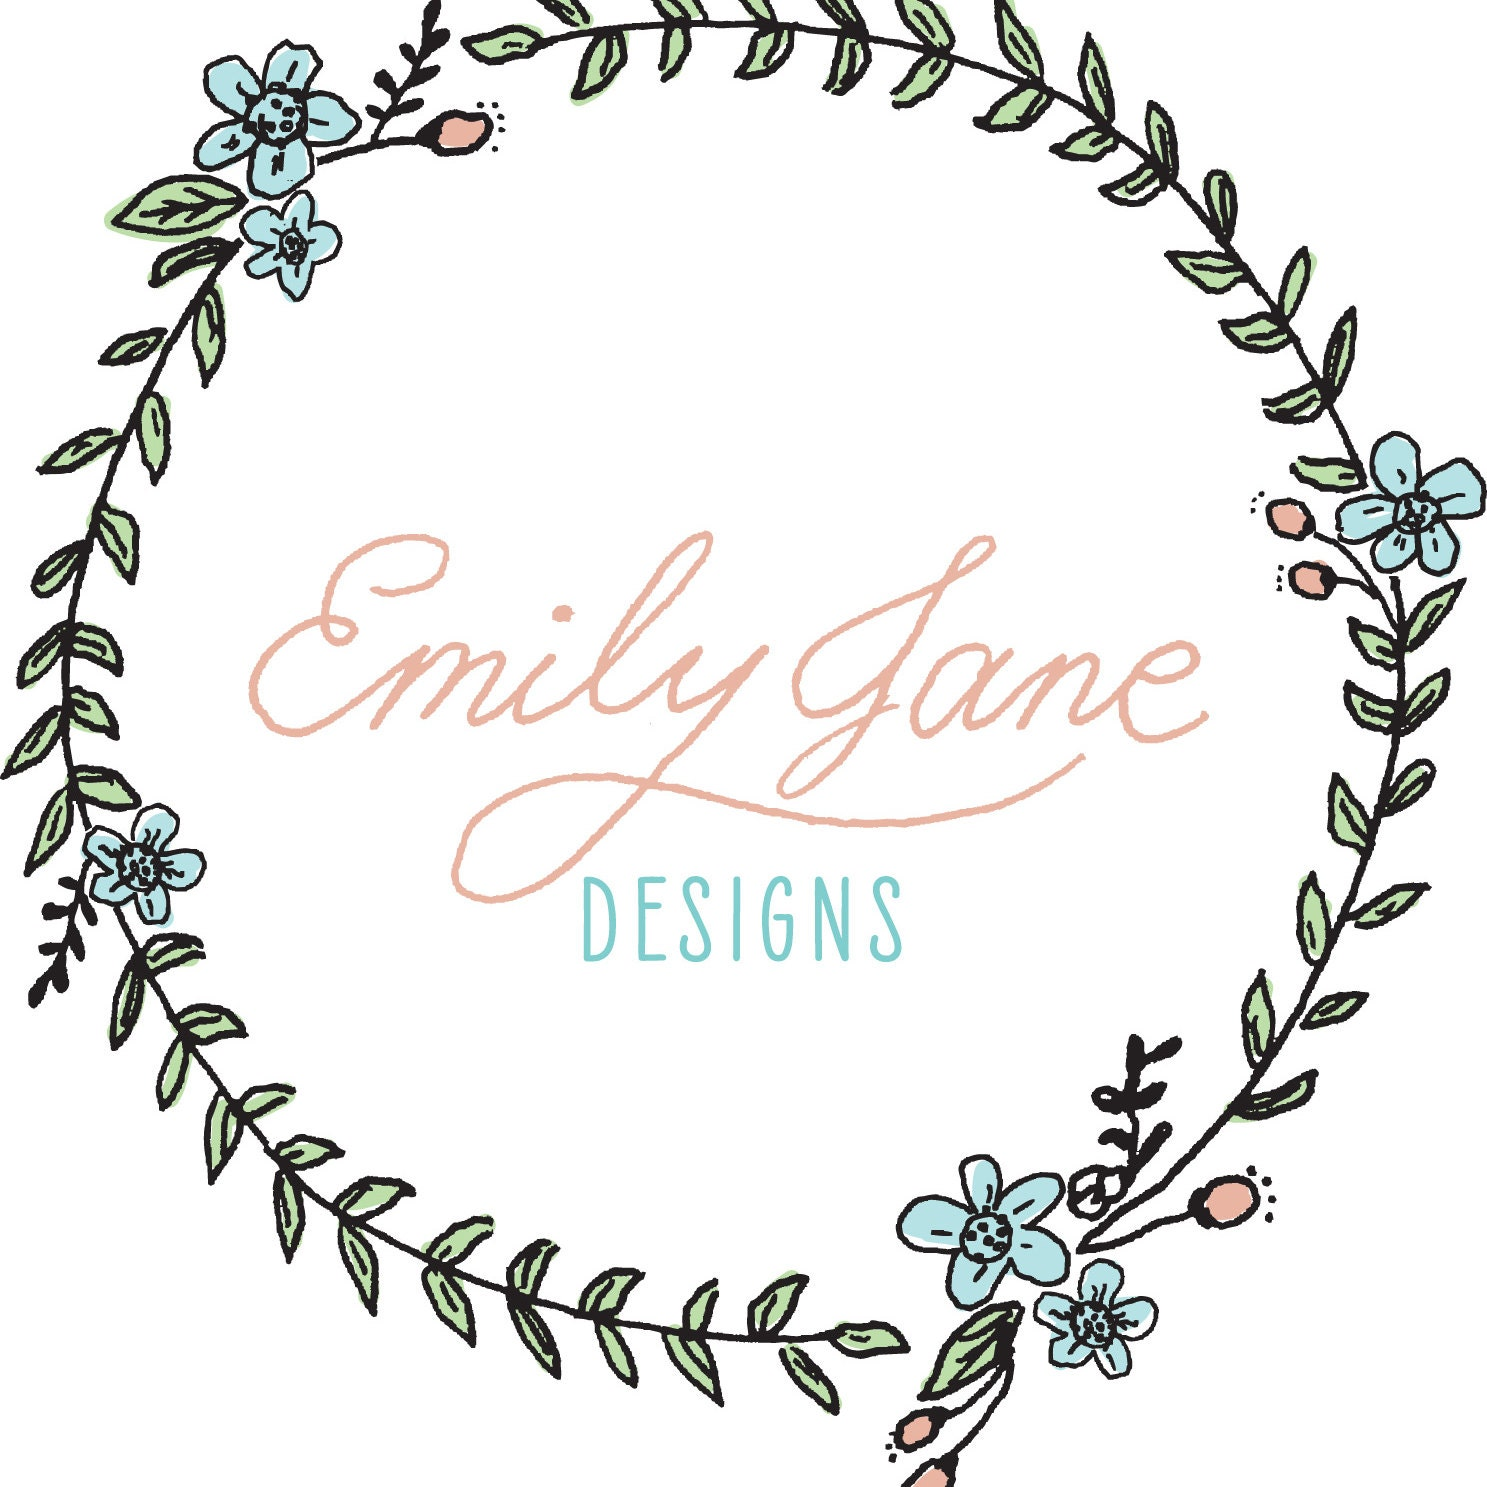 4096e74bec3e Dainty Jewelry Custom Rings Personalized Gifts by emilyjdesign